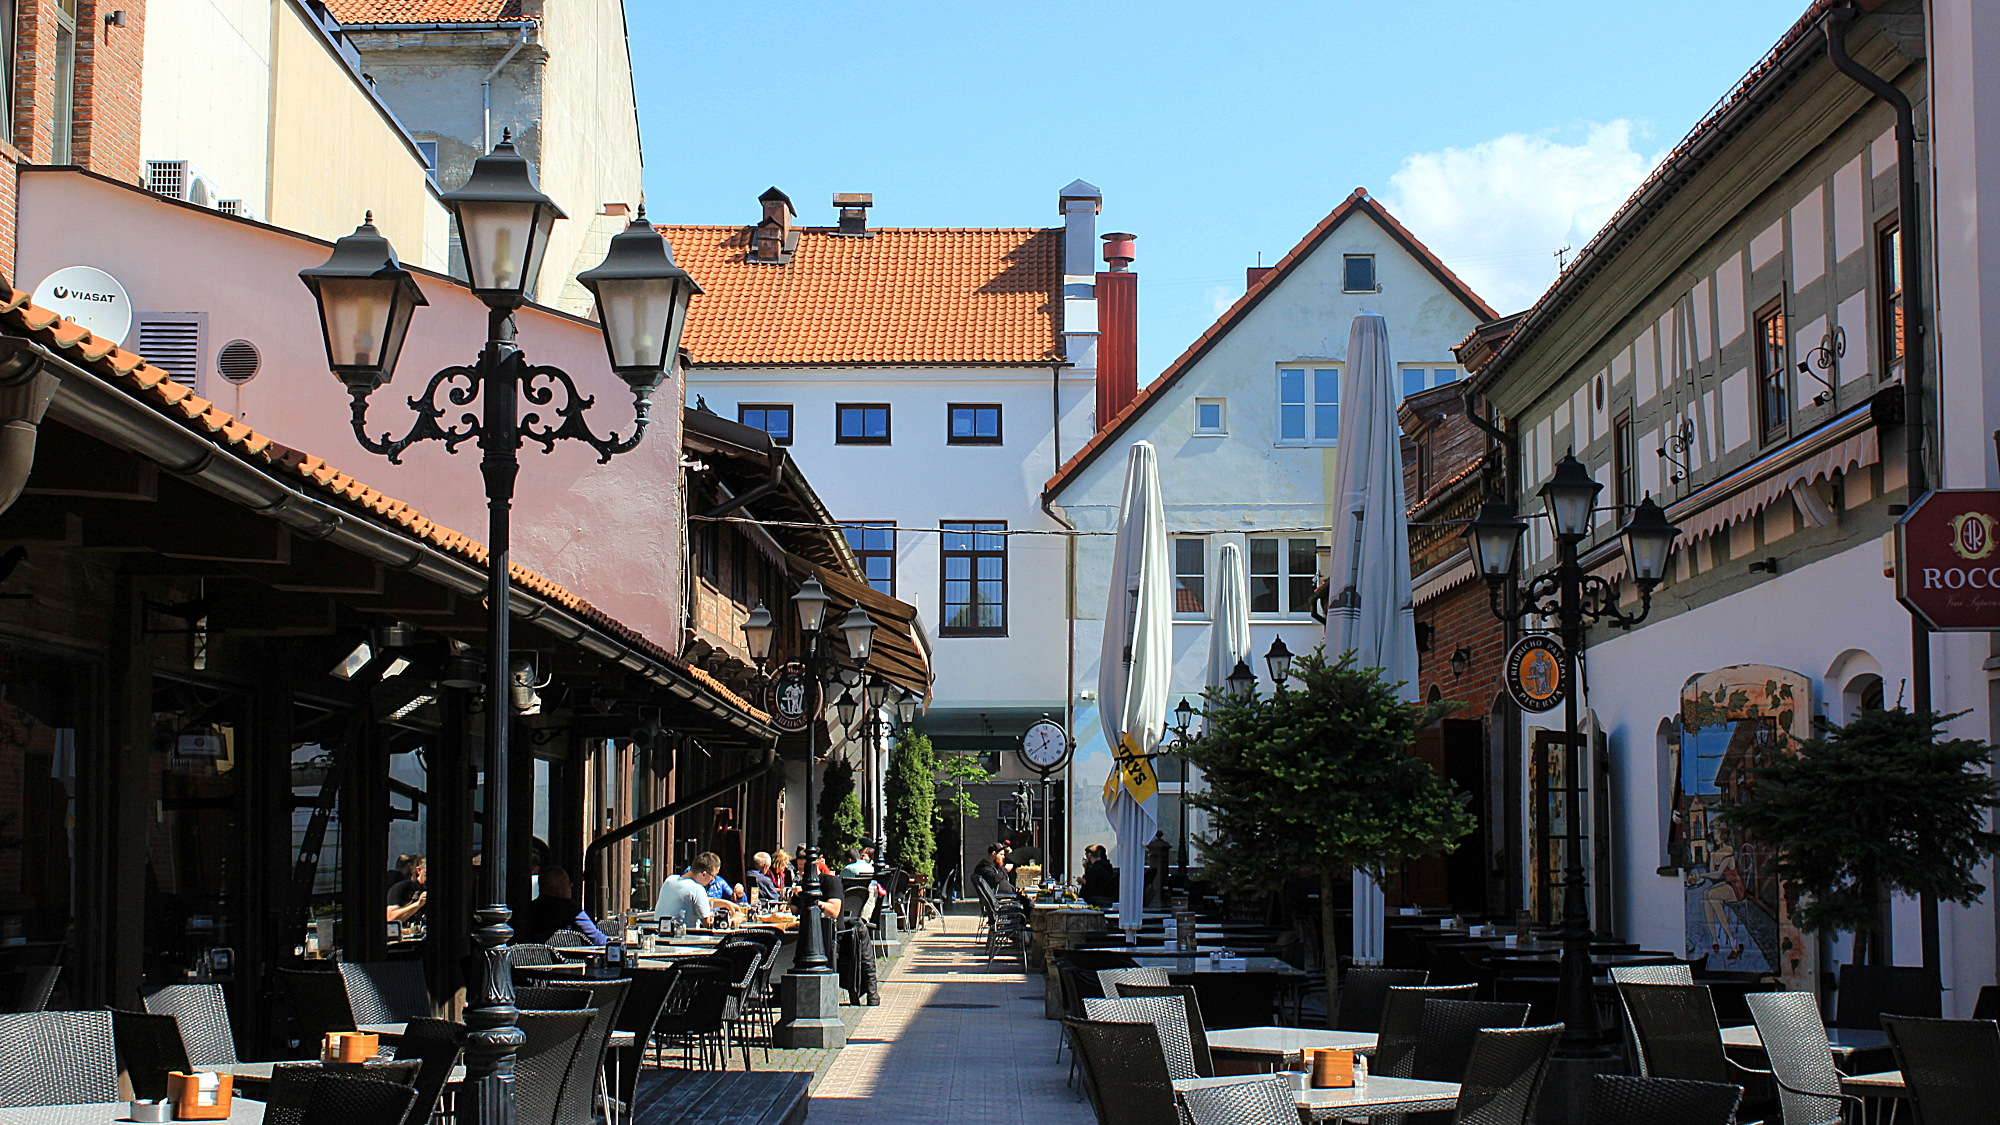 An empty, narrow sidestreet at the Old Town of Klaipeda with beautiful old buildings, an old lamp post and empty cafeteria tables.